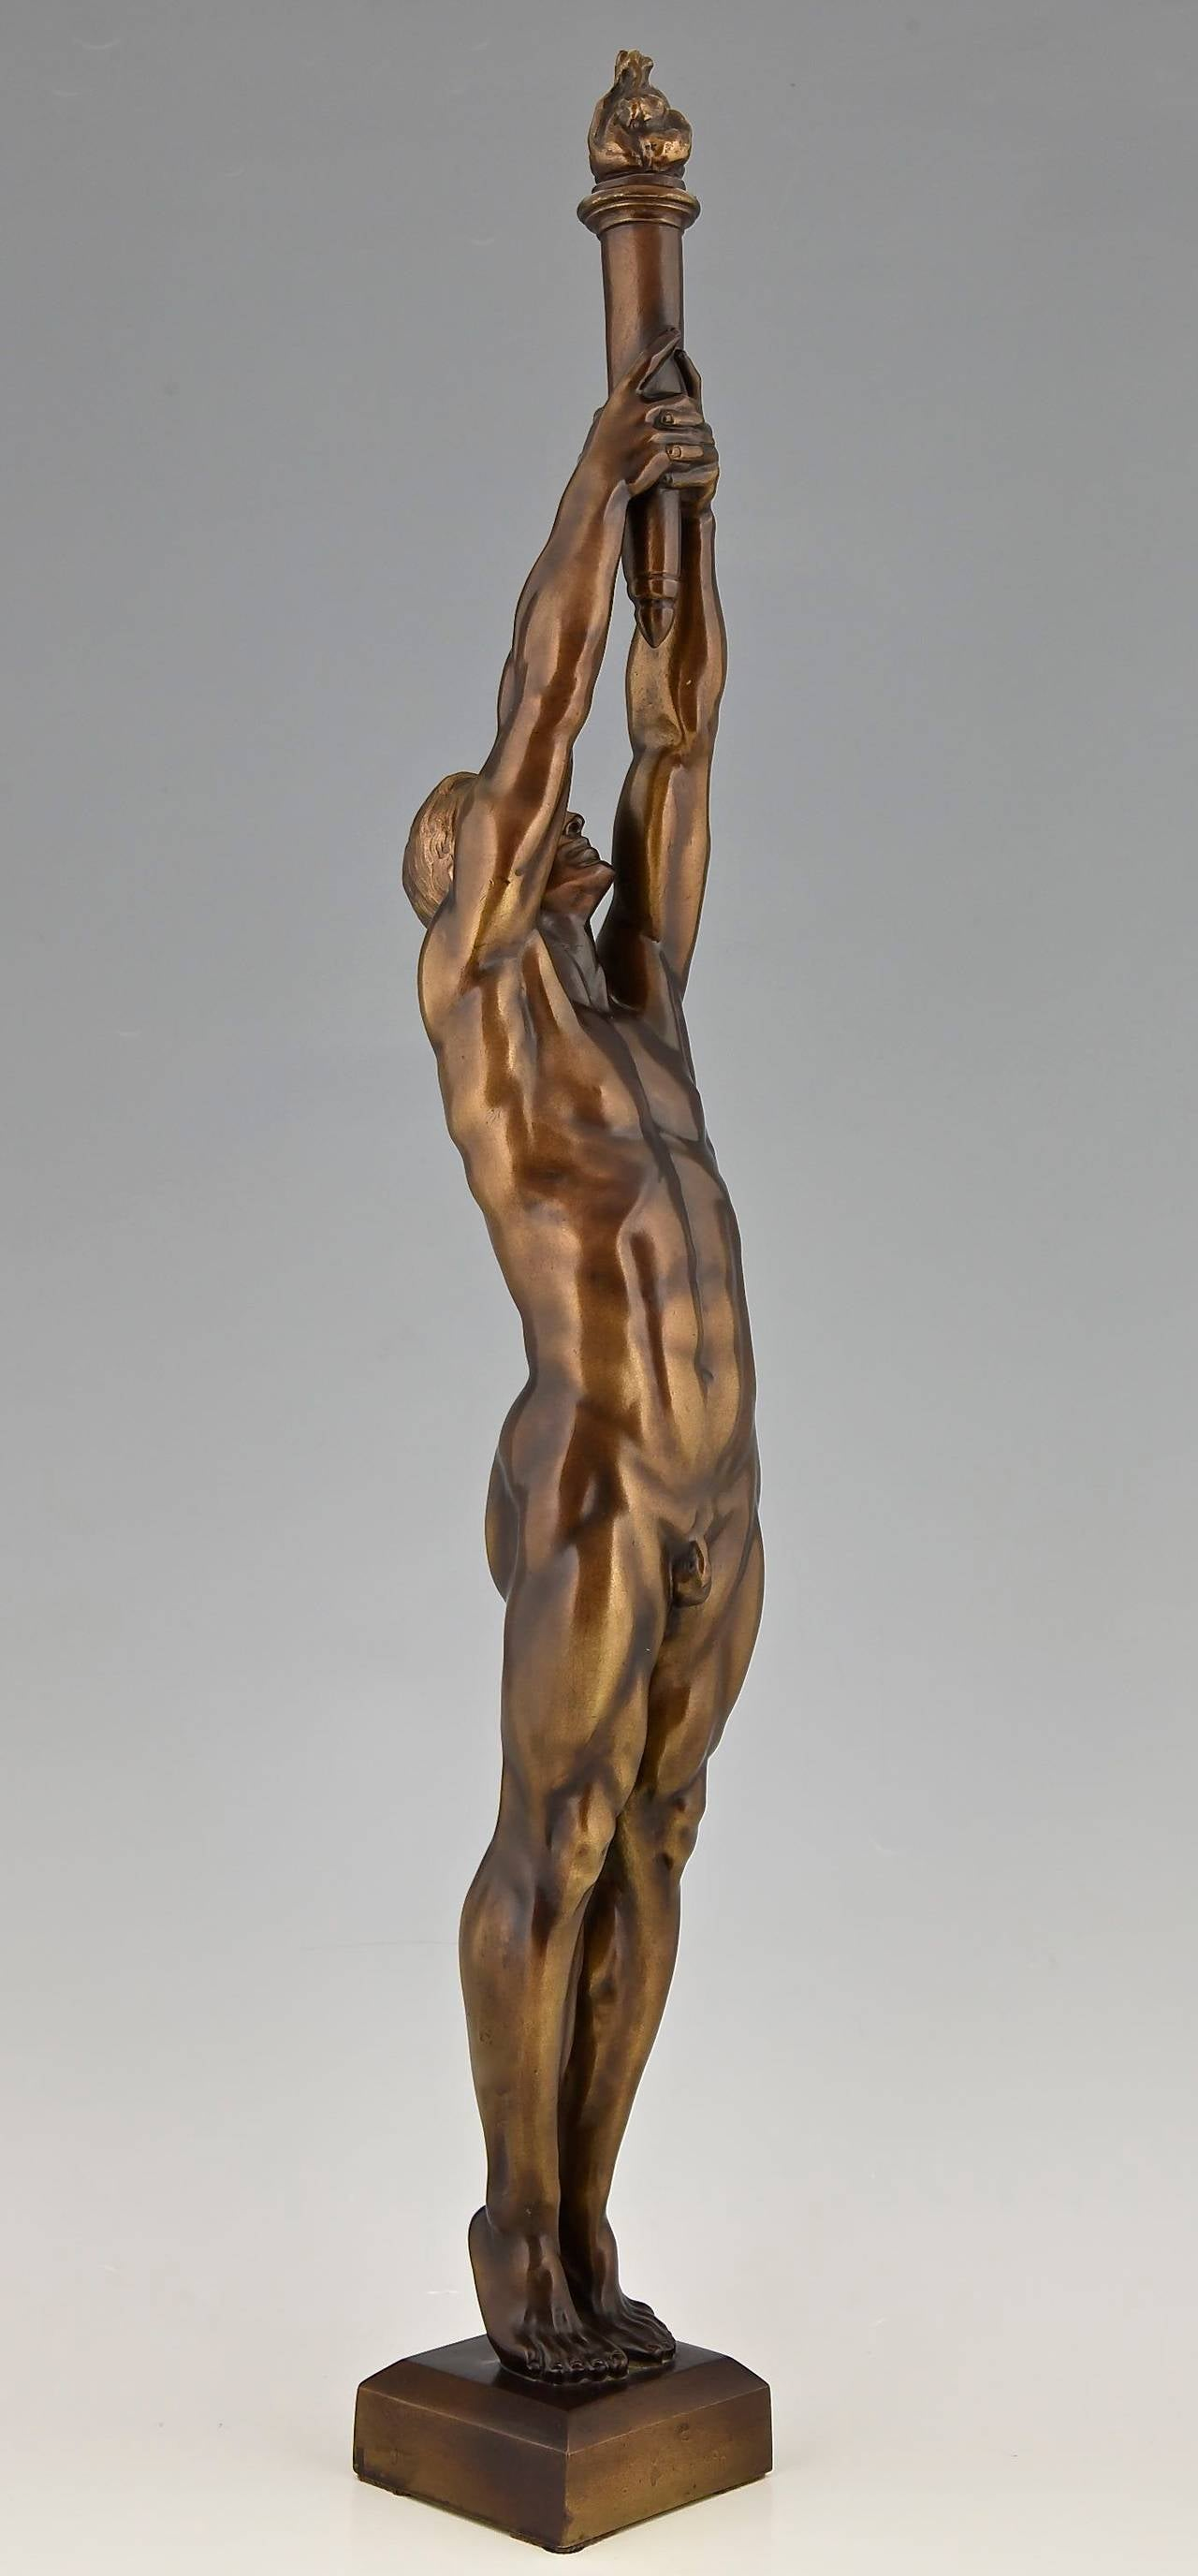 20th Century Bronze Sculpture of a Male Nude with Torch by A. Puttemans, Belgium, 1912